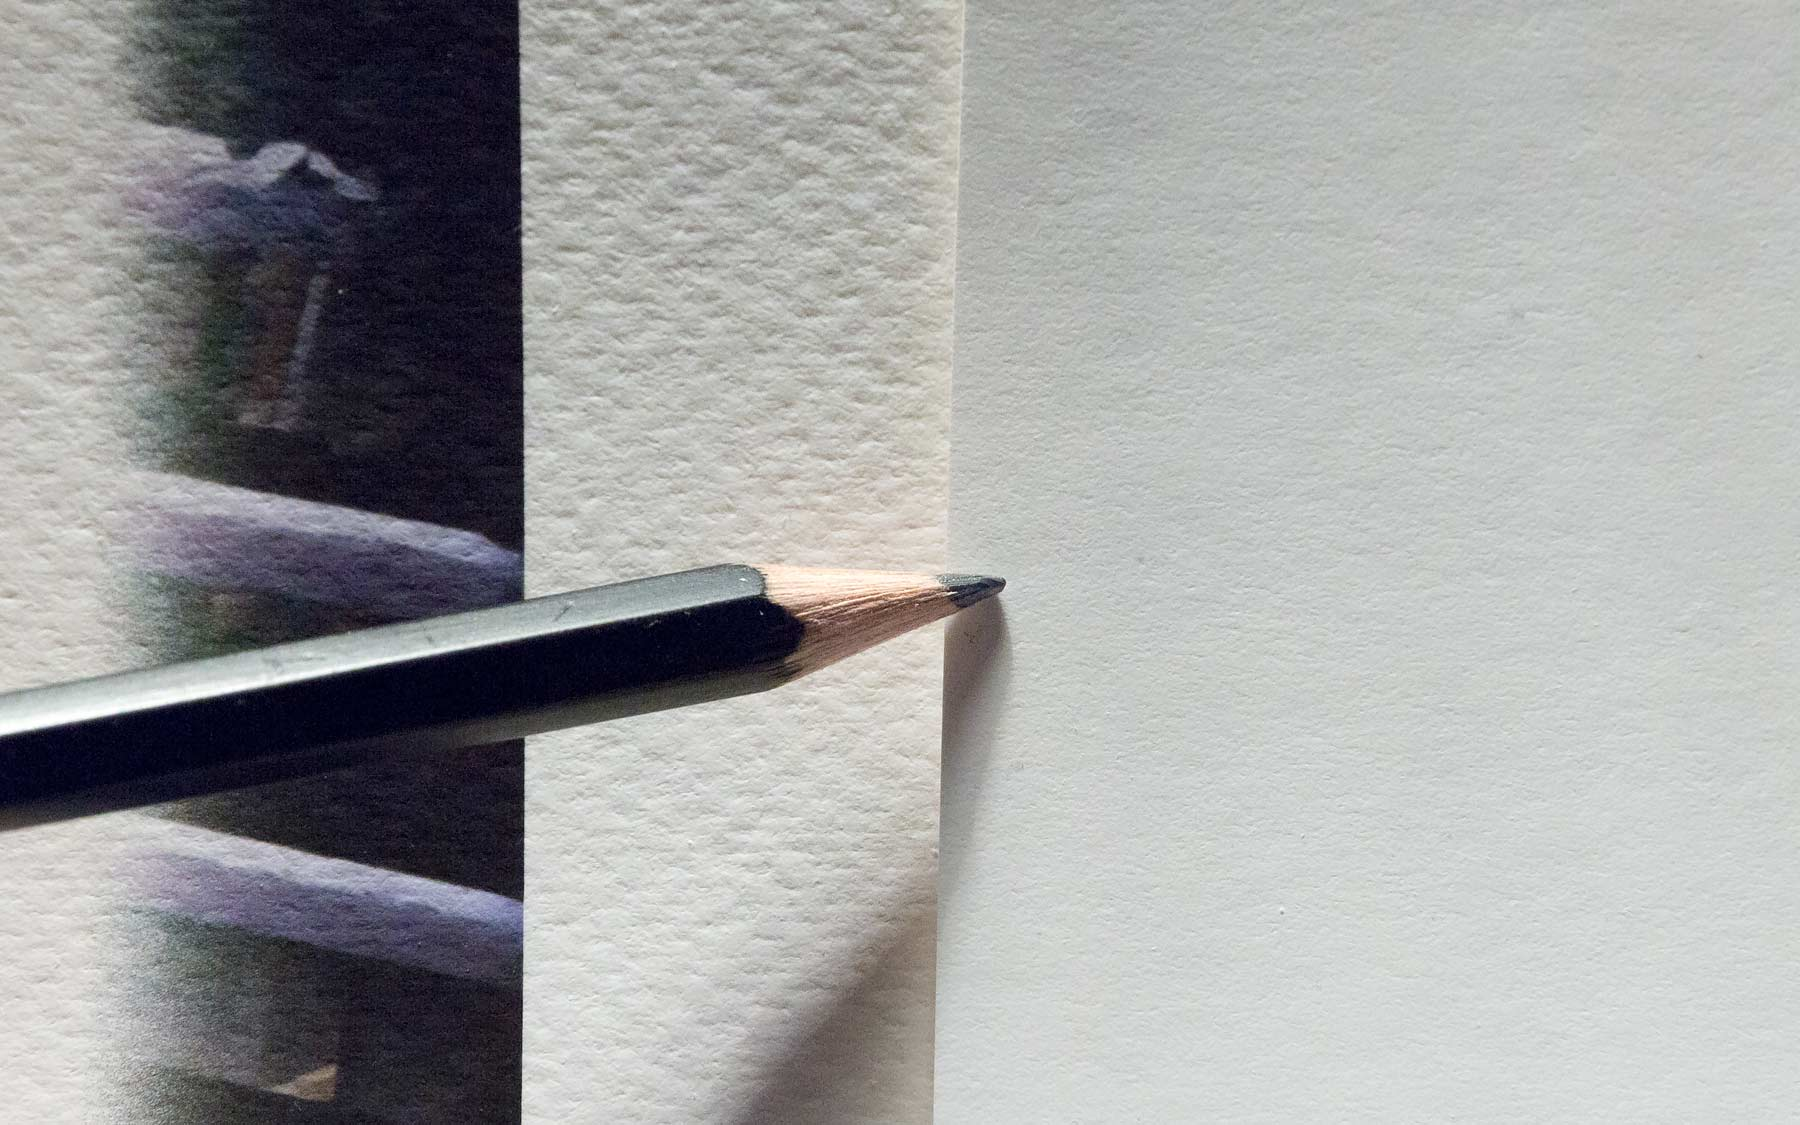 textured versus smooth paper surface